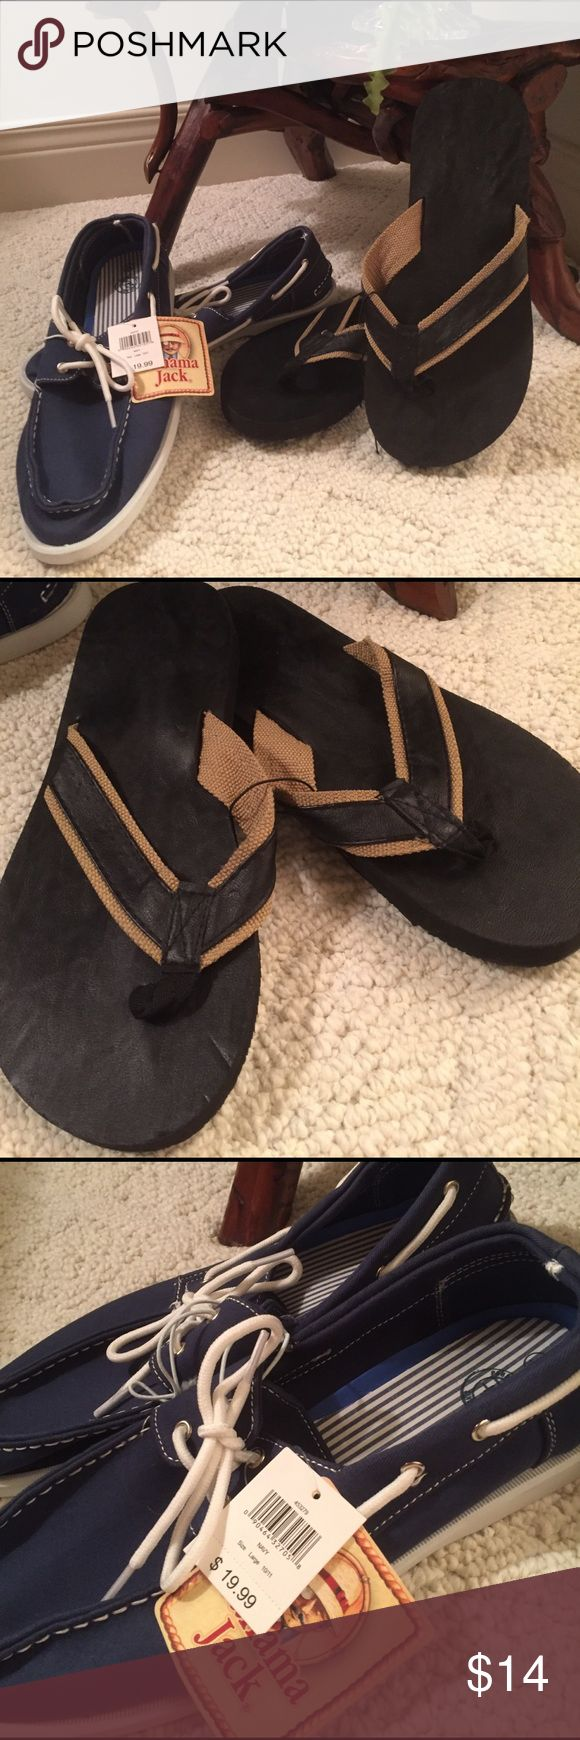 NWT 2pair set MENS SANDALS AND LOAFERS Panama Jack Navy blue loafers with white ties.these have a retail price of 19.99 - the sandals are black with burlap looking trim on straps. PanamaJack and West Loop Shoes Loafers & Slip-Ons